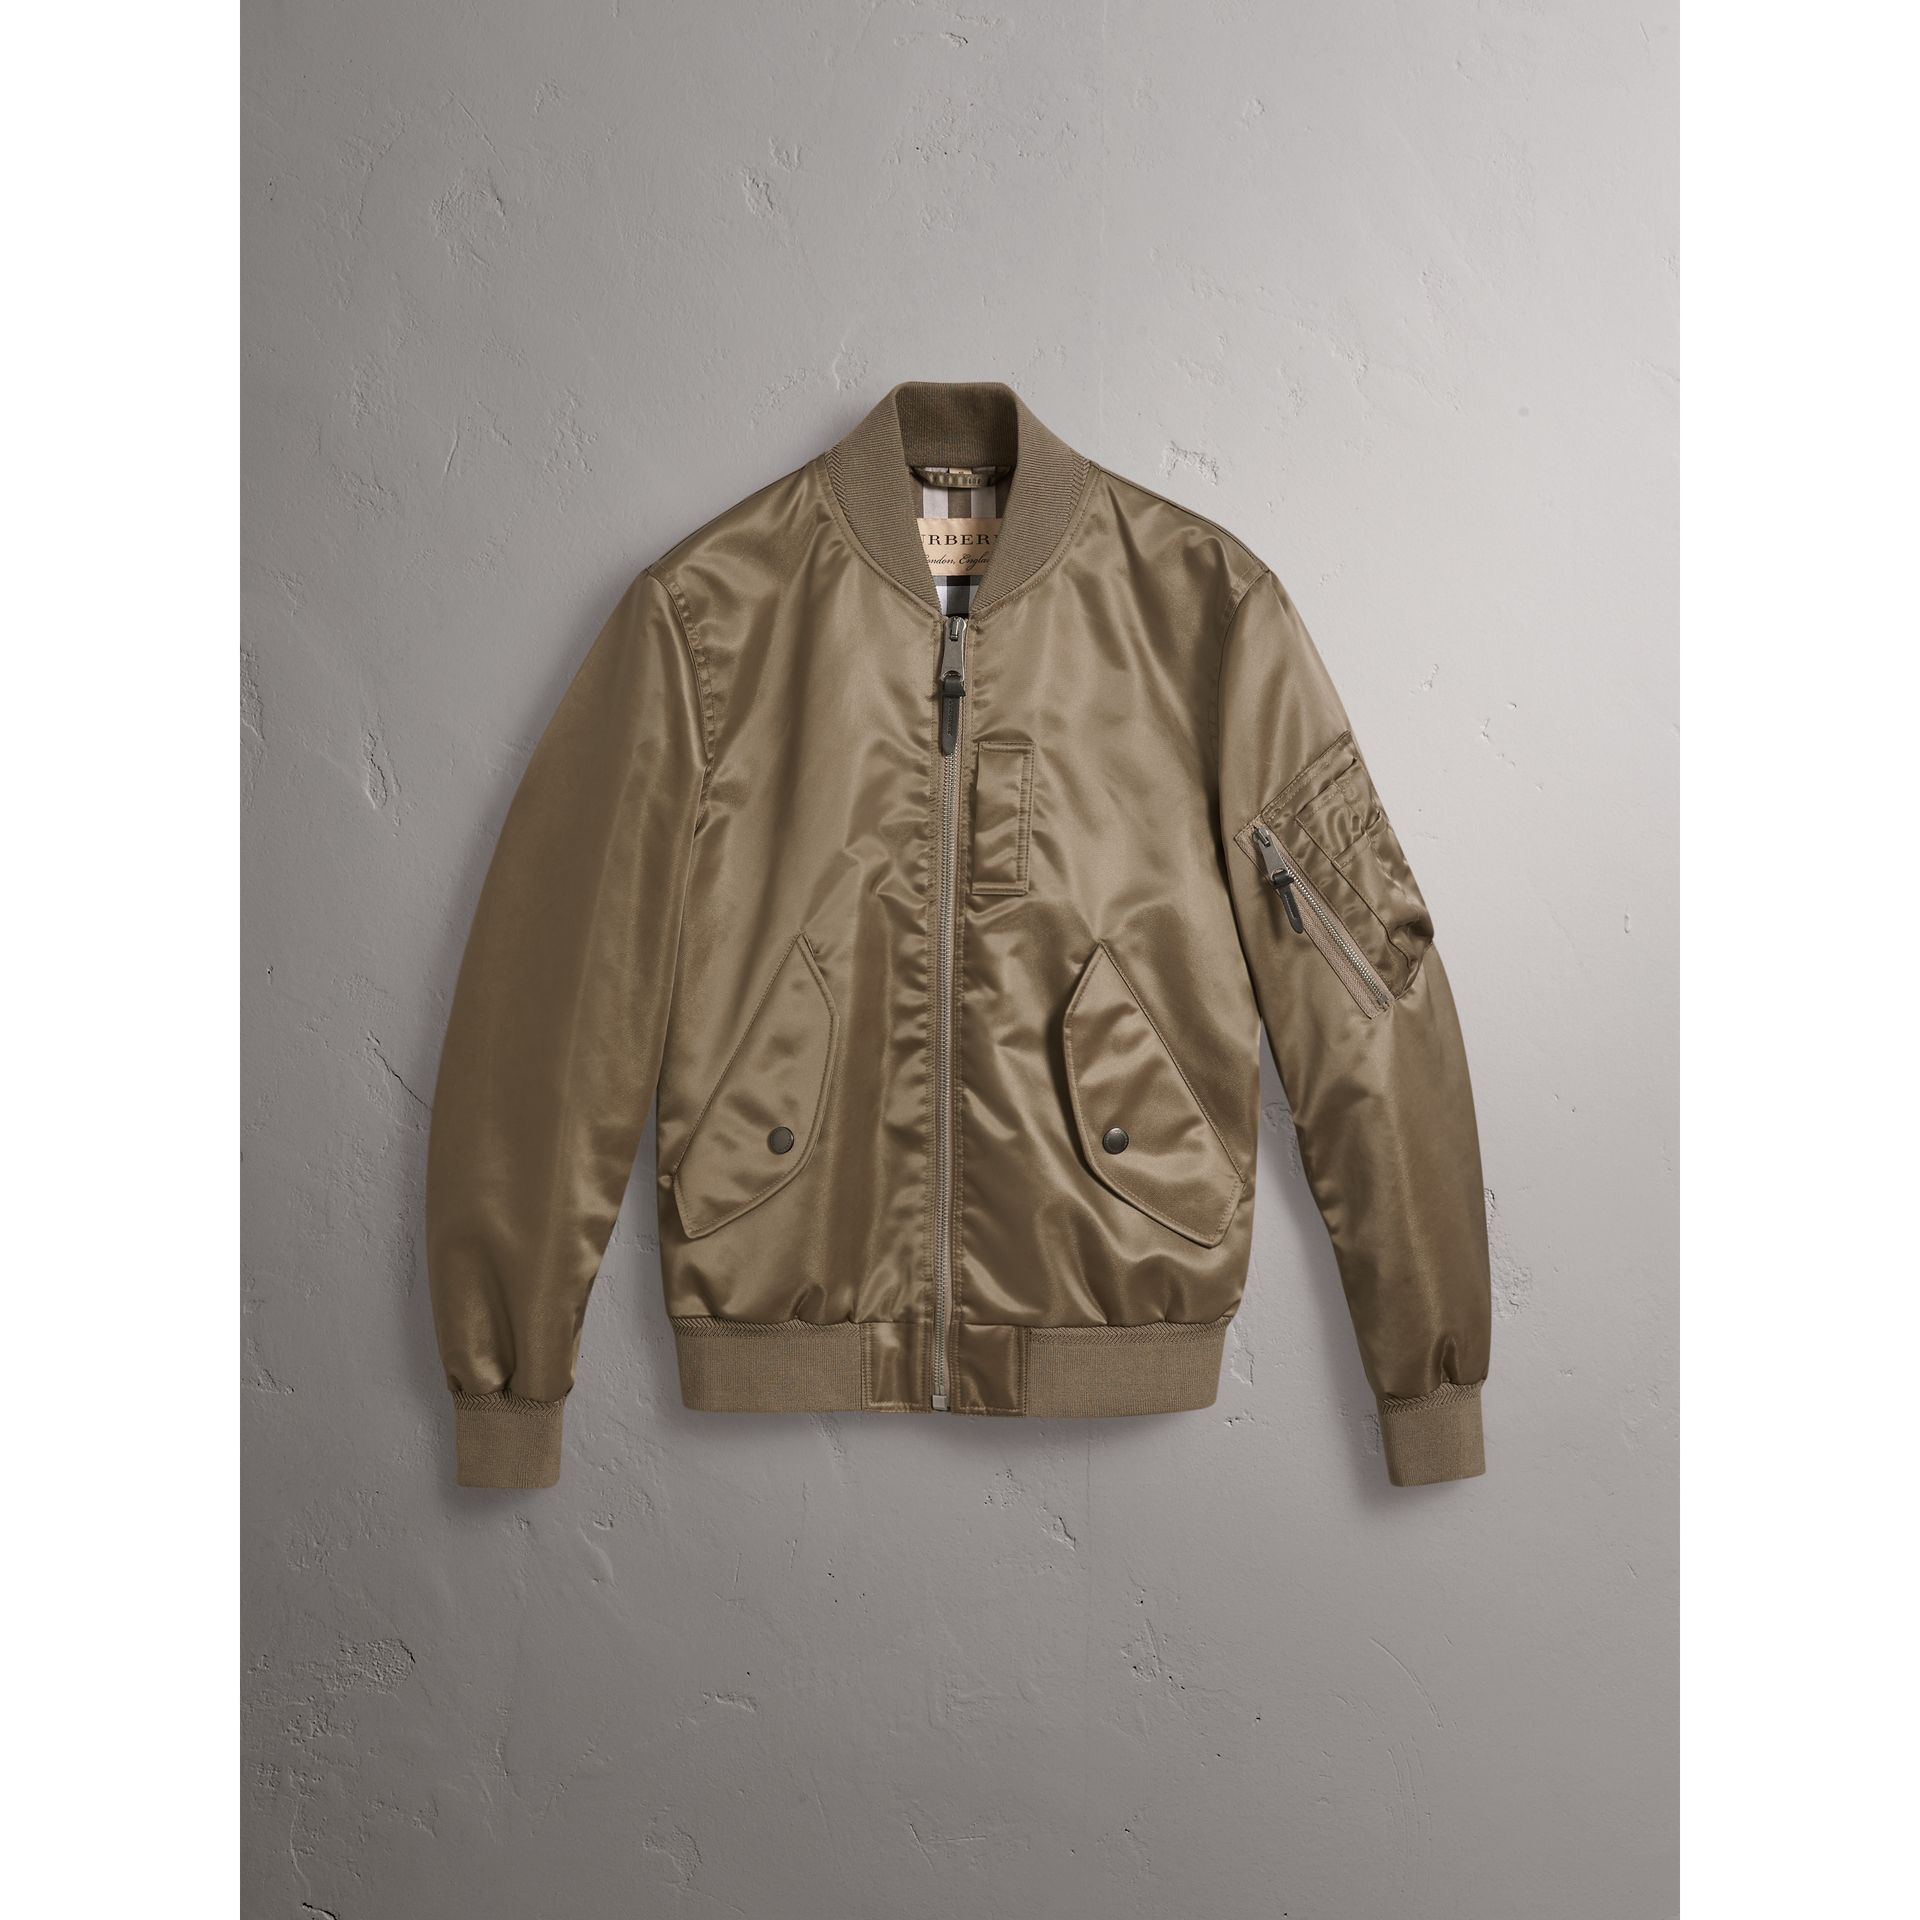 7b2a5189f Satin Bomber Jacket by Burberry